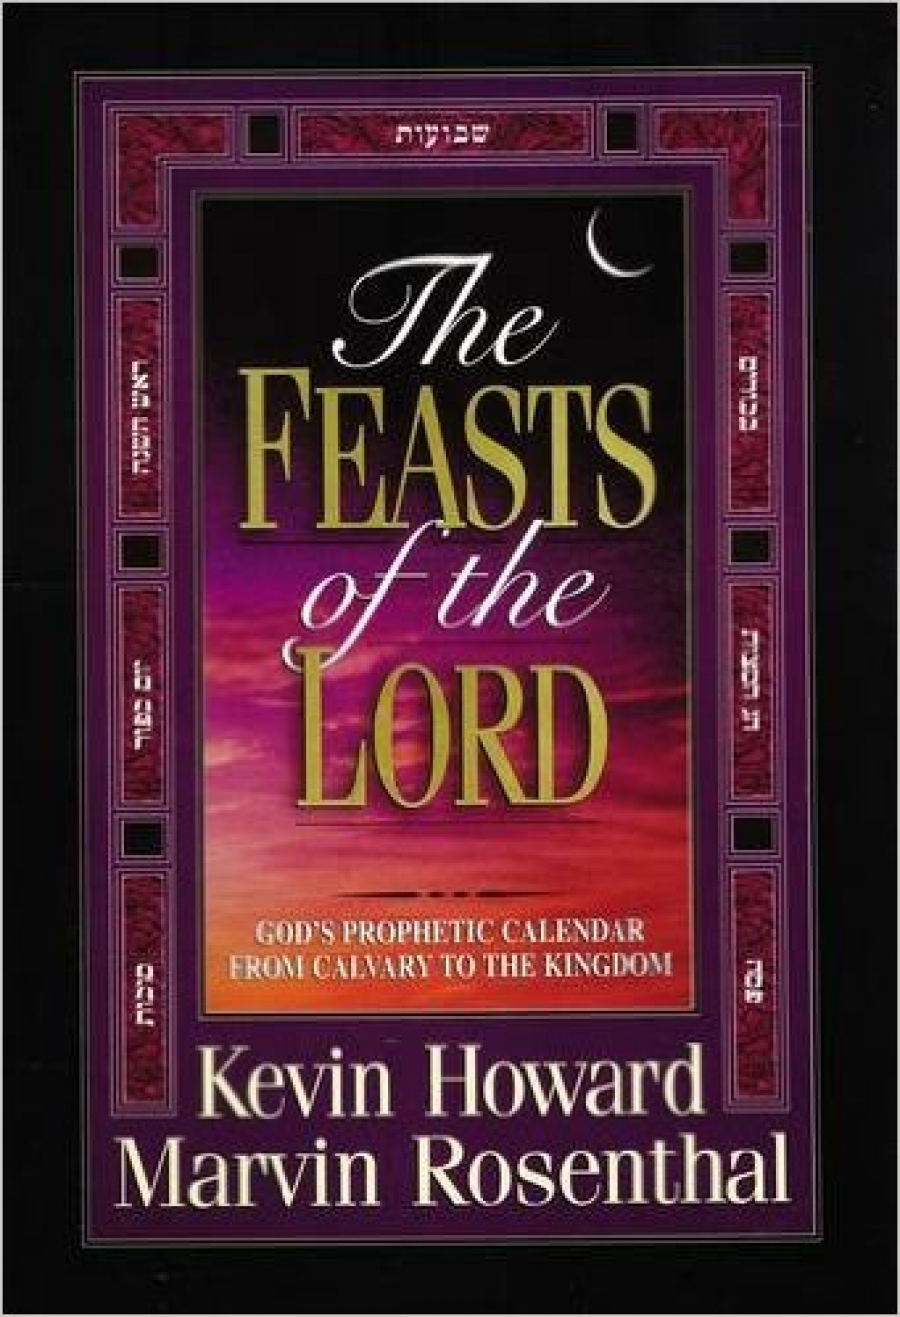 Review: The Feasts of the Lord